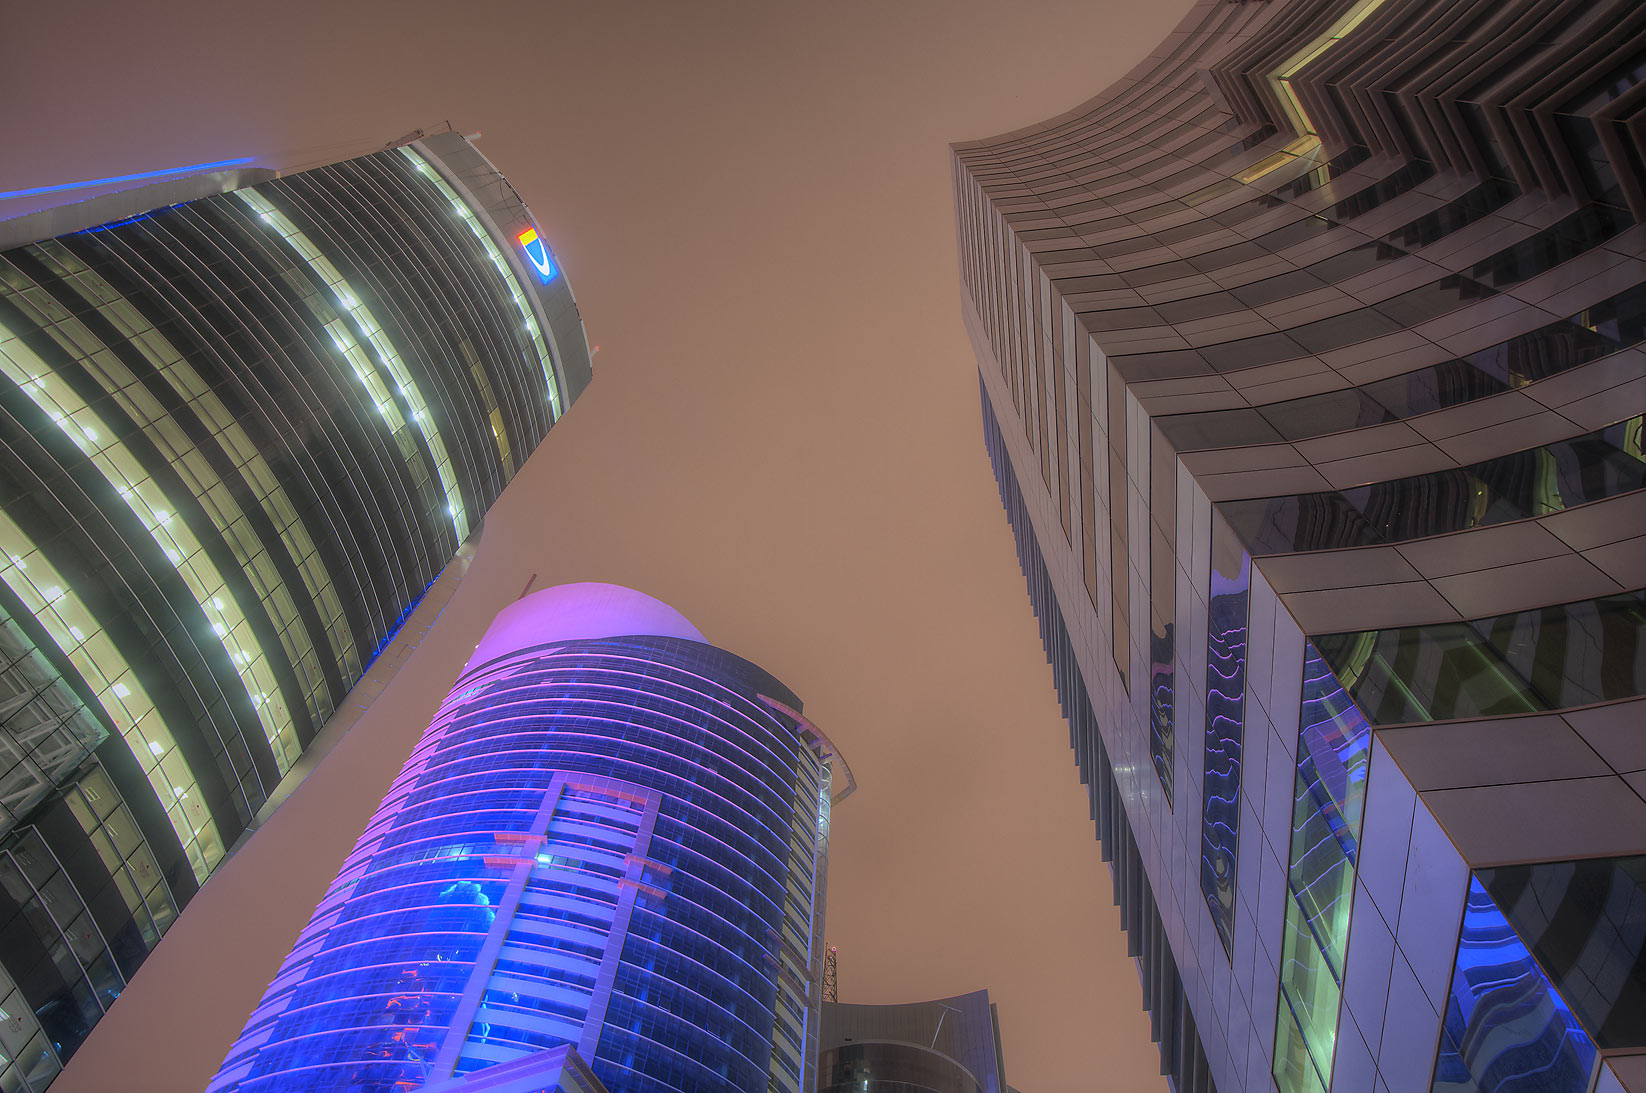 Doha Bank, Ramez Tower and Public Works Authority...from Sheraton Roundabout. Doha, Qatar